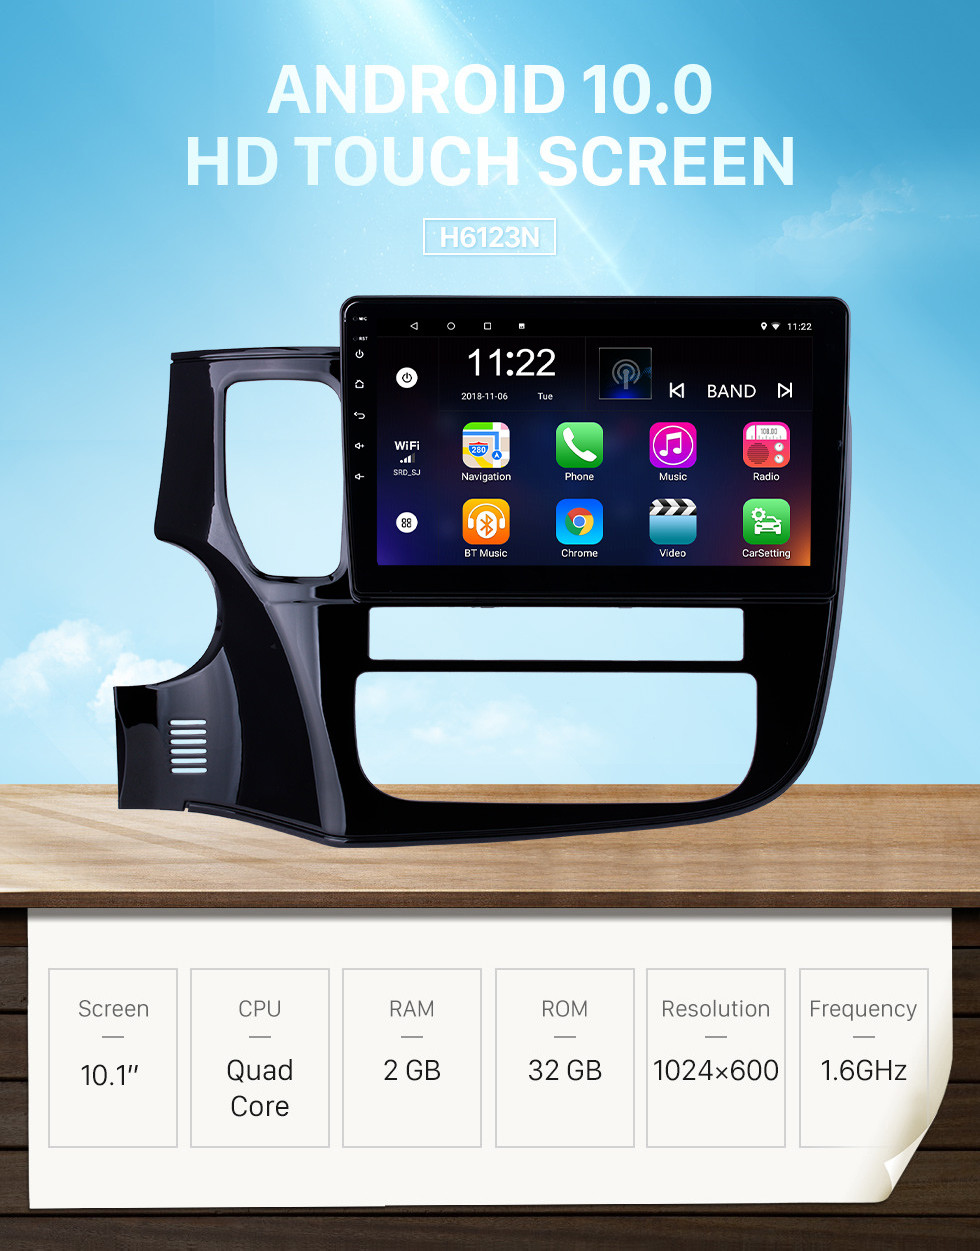 Seicane 9 Inch OEM Android 10.0 Radio GPS Navigation system For 1998-2005 Mercedes Benz S Class W220 S280 S320 S350 S400 S430 S500 S600 S55 AMG  S63 AMG S65 AMG with Bluetooth HD Touch Screen TPMS DVR OBD II Rear camera AUX 3G WiFi